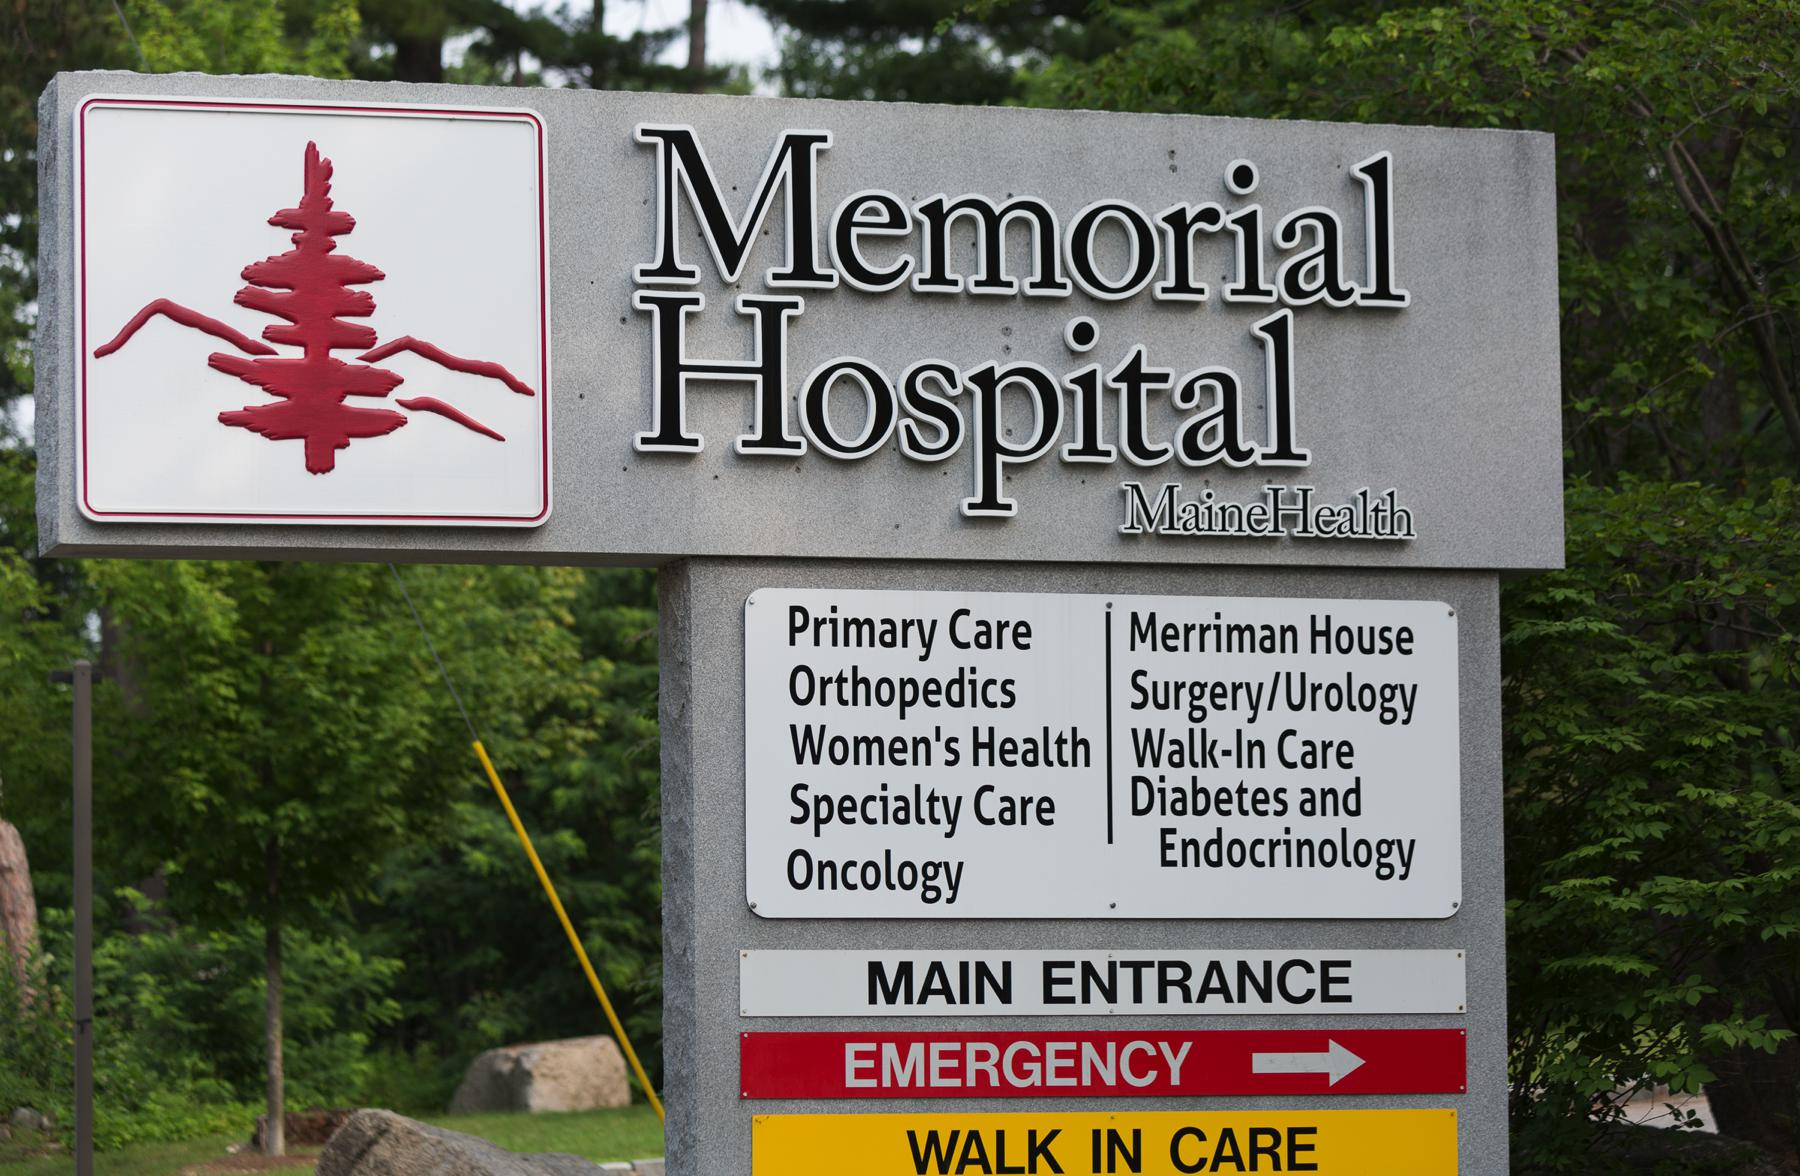 Walk-In Care Center At Memorial Hospital Located At 3073 White Mountain Highway, North Conway, NH